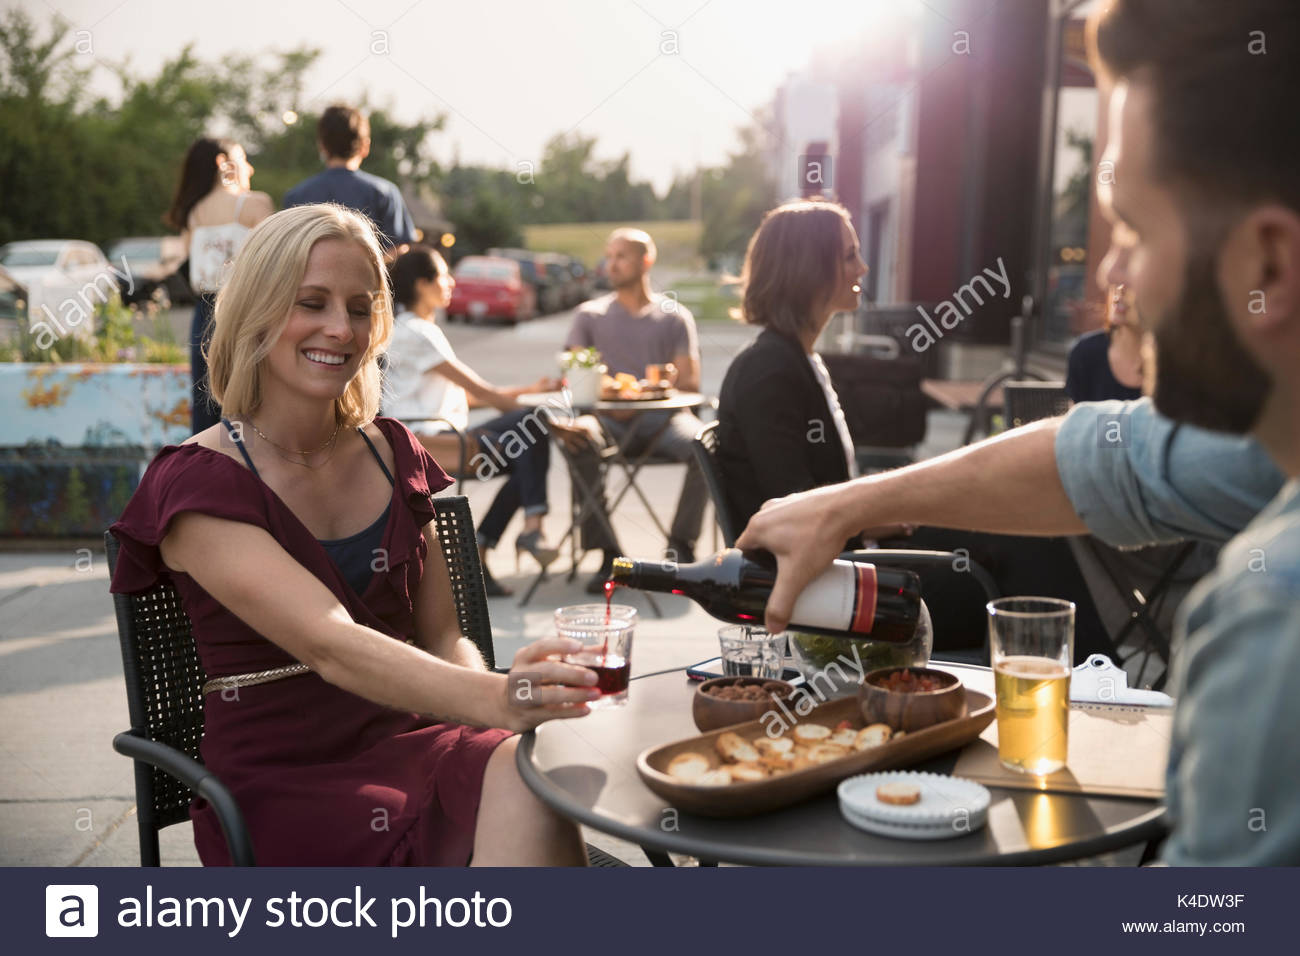 Man pouring Red Wine pour l'amie at sidewalk cafe Photo Stock